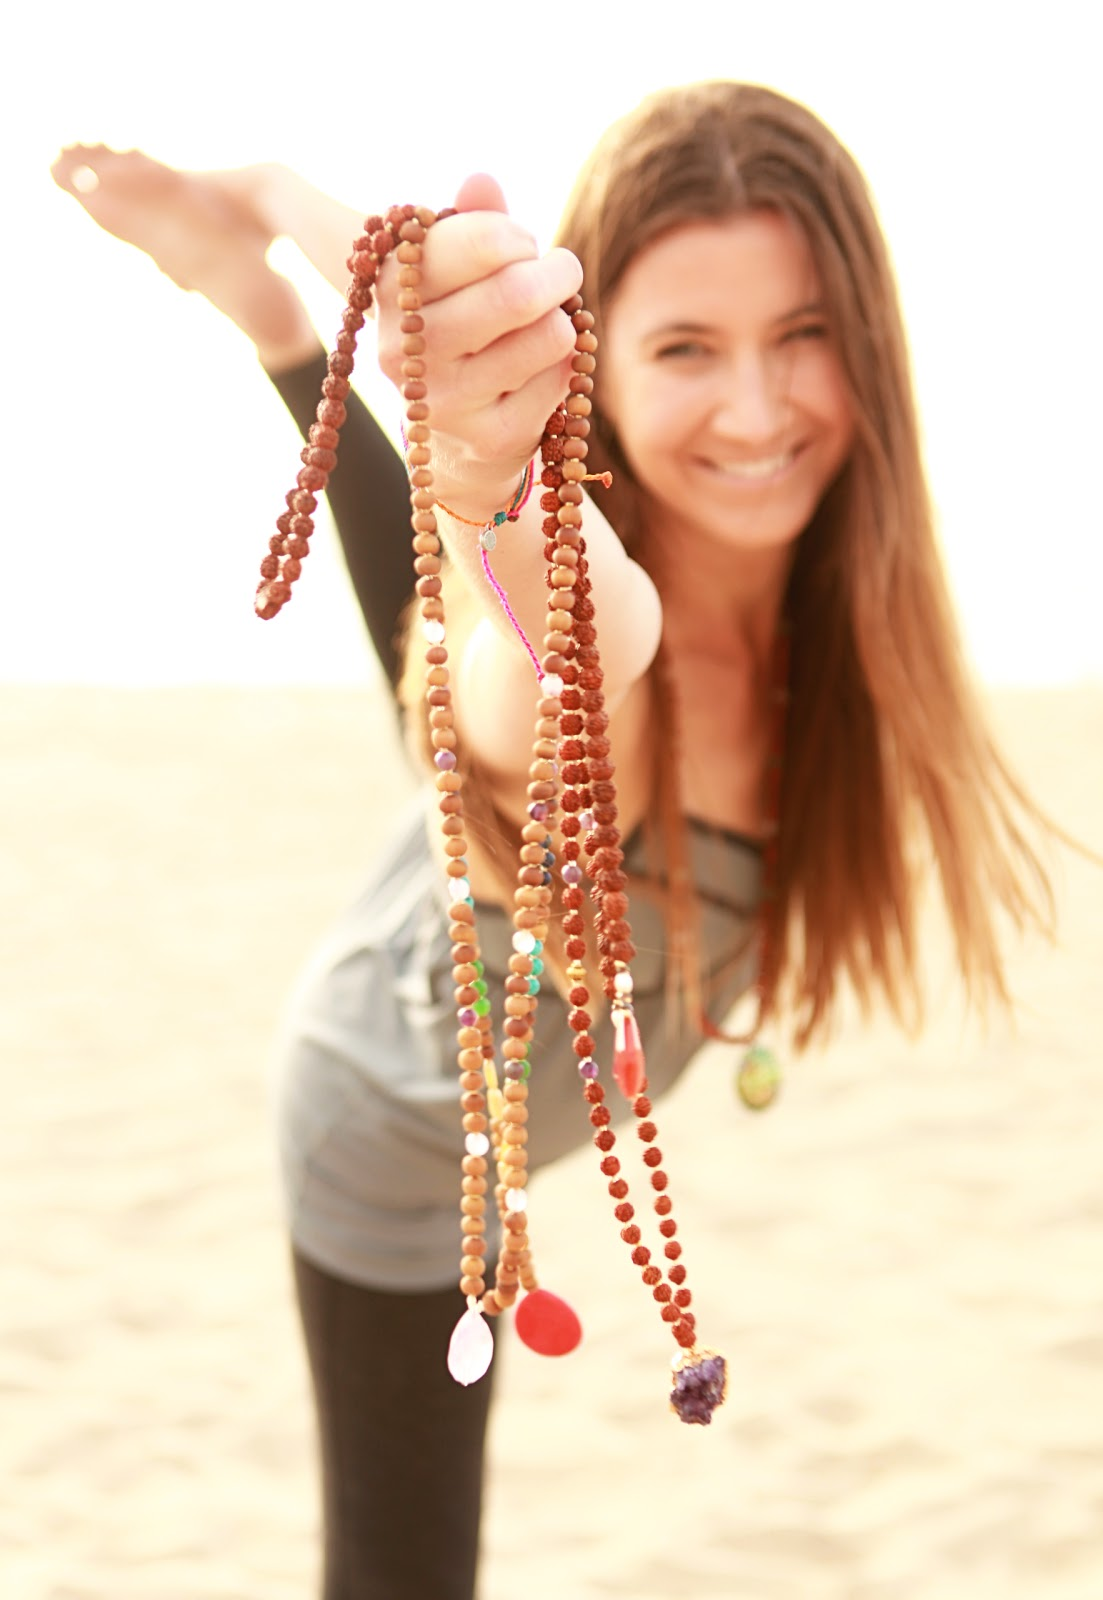 Shop Eat Yoga Shop Mala Bead Necklaces By Chelsea Welch